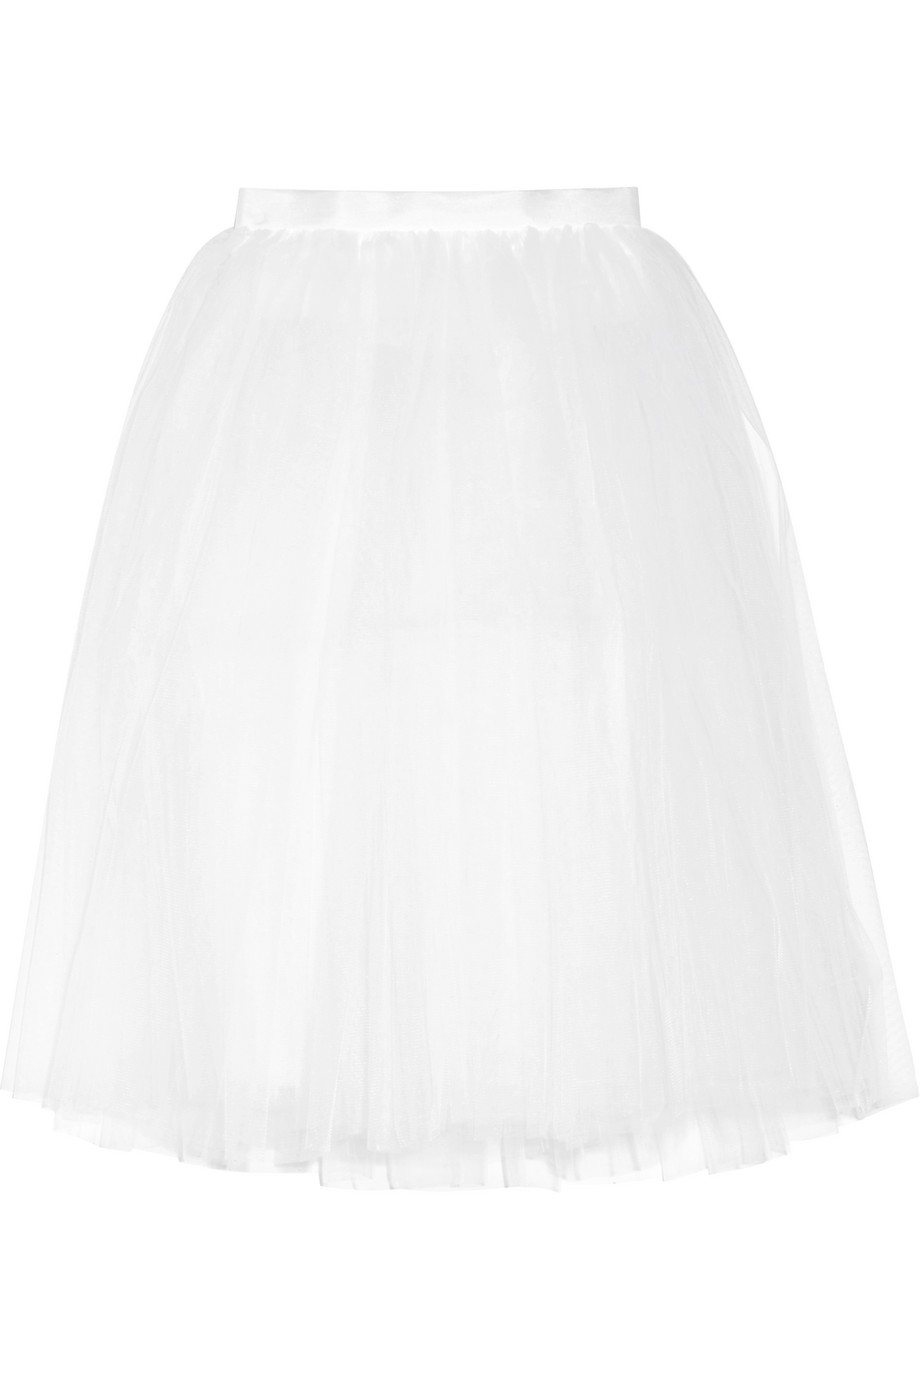 Tulle Skirt, Ballet Beautiful, White, Women's, Size: L